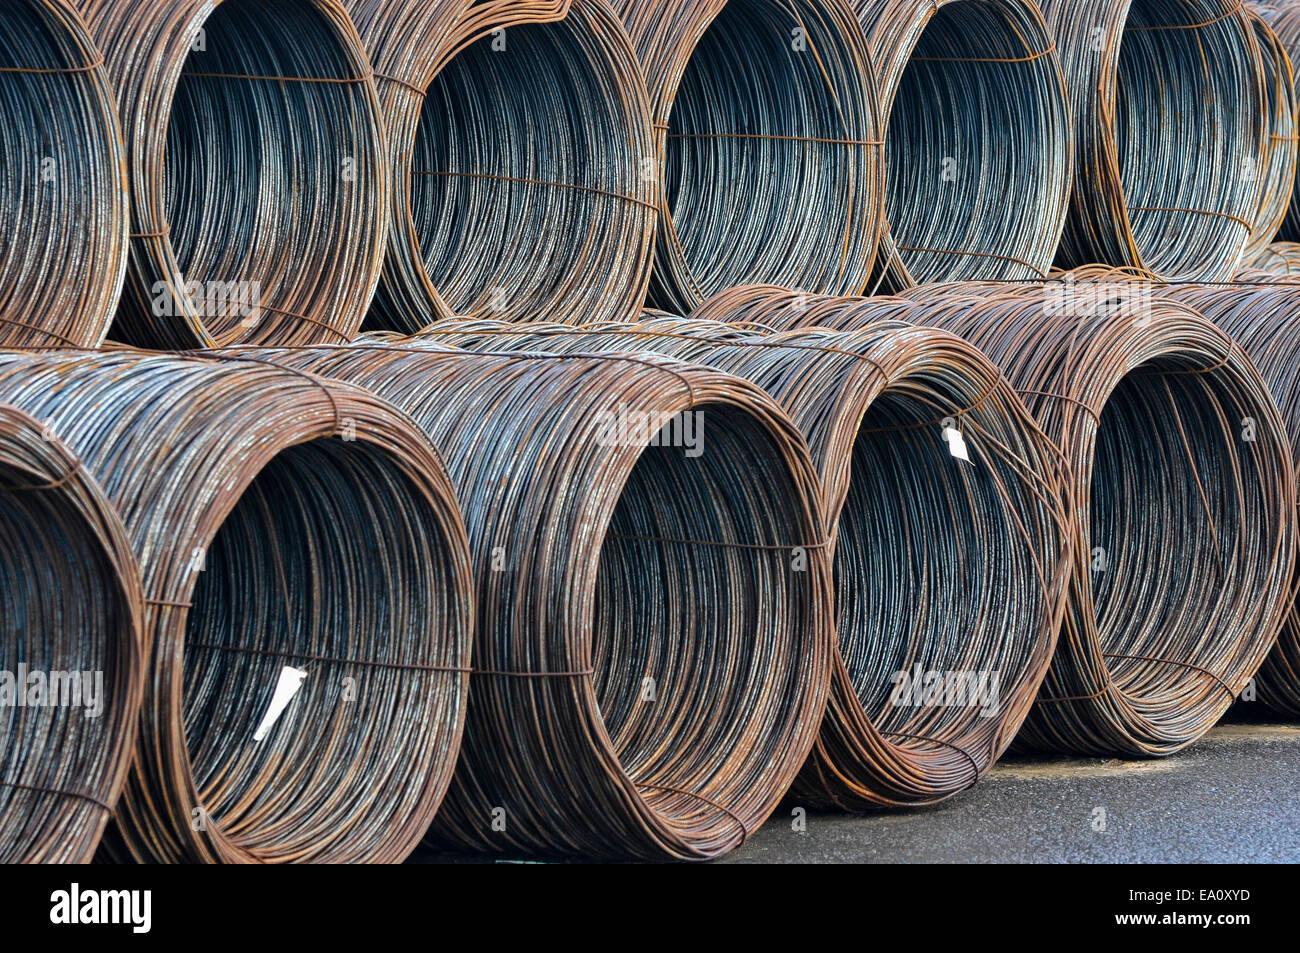 Coil To Coil Storage Stock Photos & Coil To Coil Storage Stock ...